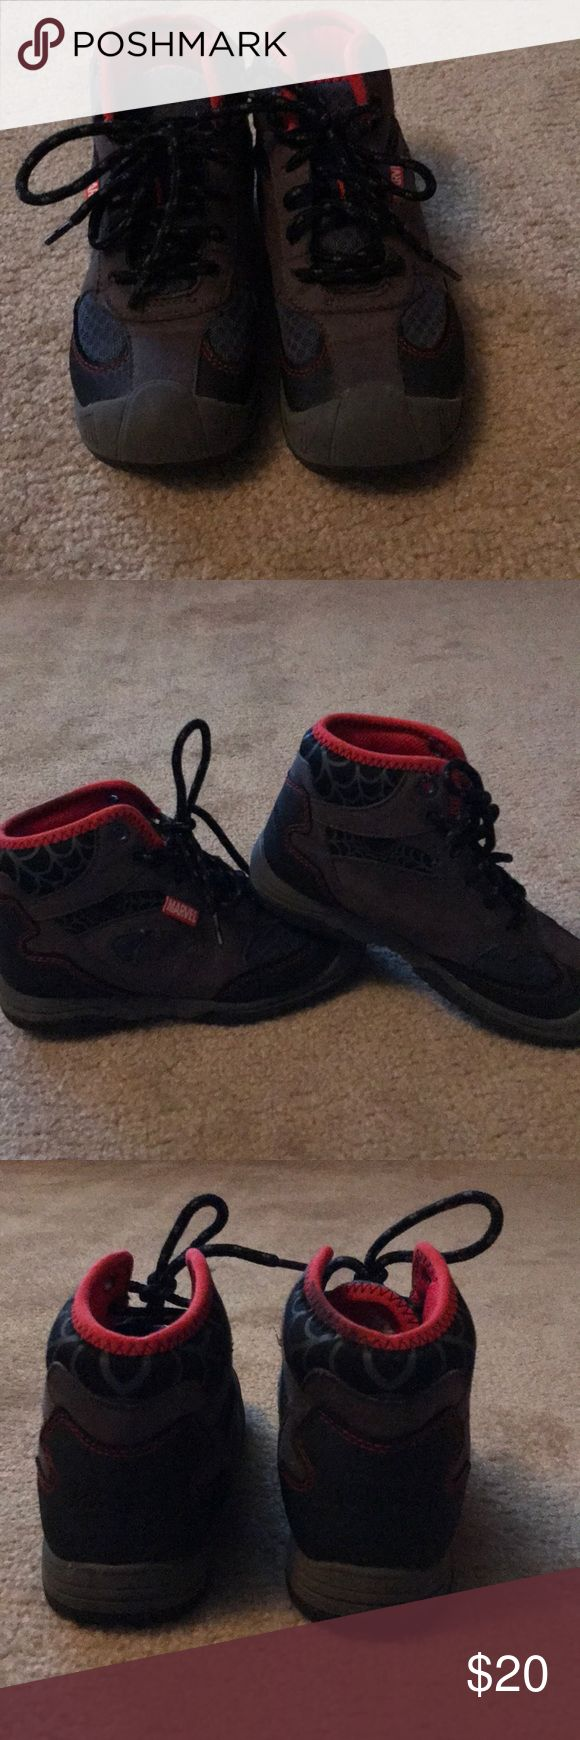 Boys marvel Spider-Man work boots Boys size 12 Spider-Man workboots by MARVEL Gray suede and navy canvas upper with spider and web details and red accents. Rubber sole with toe bumper  Worn only a handful of times, and are practically new! Marvel Shoes Boots